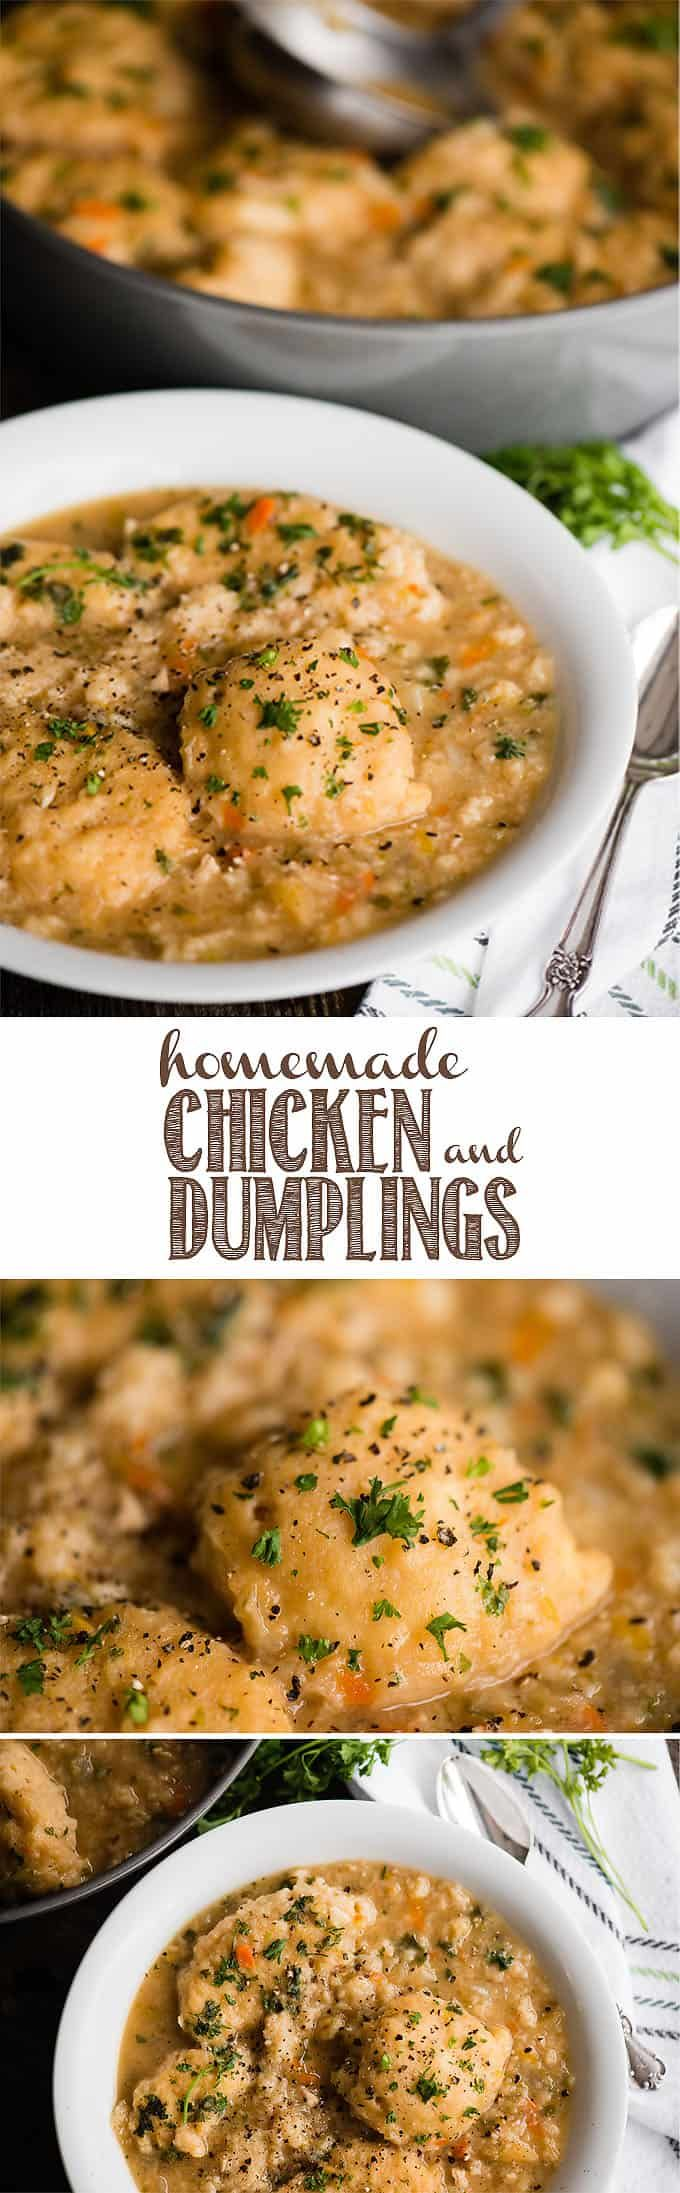 Homemade Chicken and Dumplings, with tender chicken, vegetables, and scratch made drop dumplings, is the kind of comfort food we crave. This meal has the same great taste as a homemade chicken soup, but the fluffy dumplings make it a filling and savory meal. Chicken and Dumplings is an old fashioned favorite recipe. #chicken #dumplings #chickenanddumplings